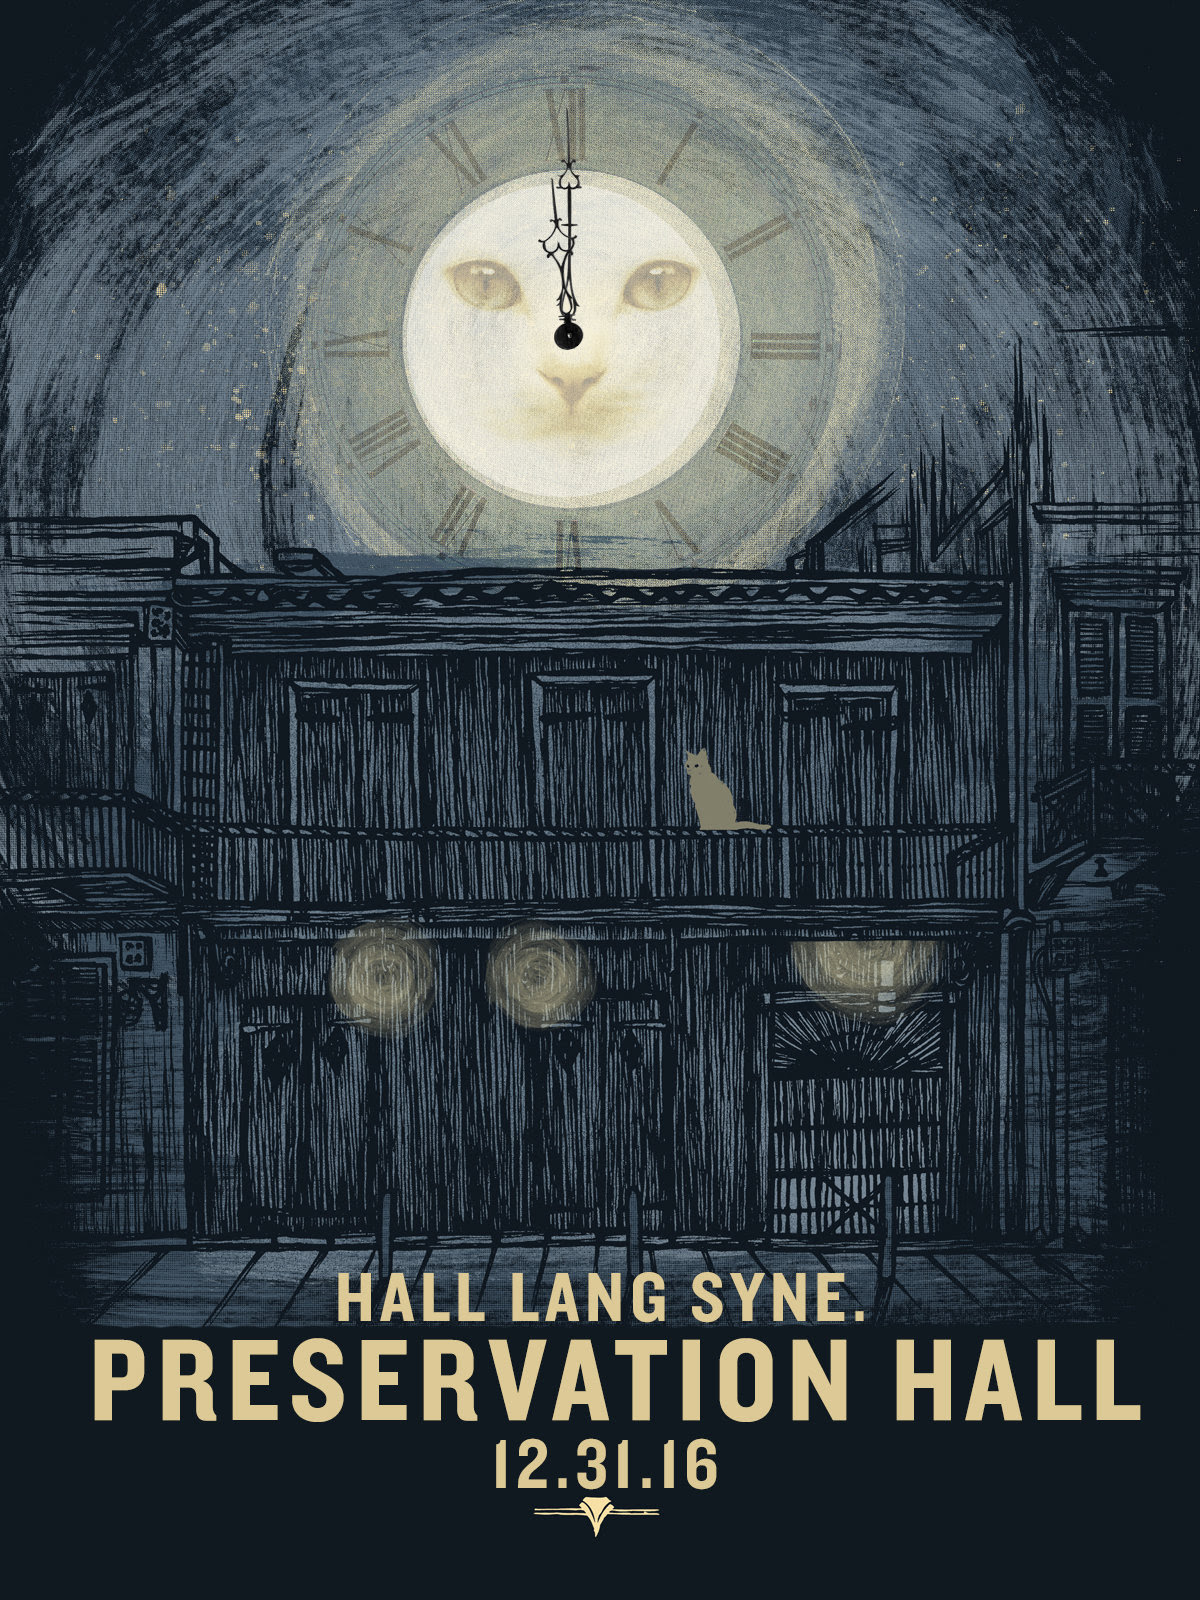 New Year's Eve at Preservation Hall